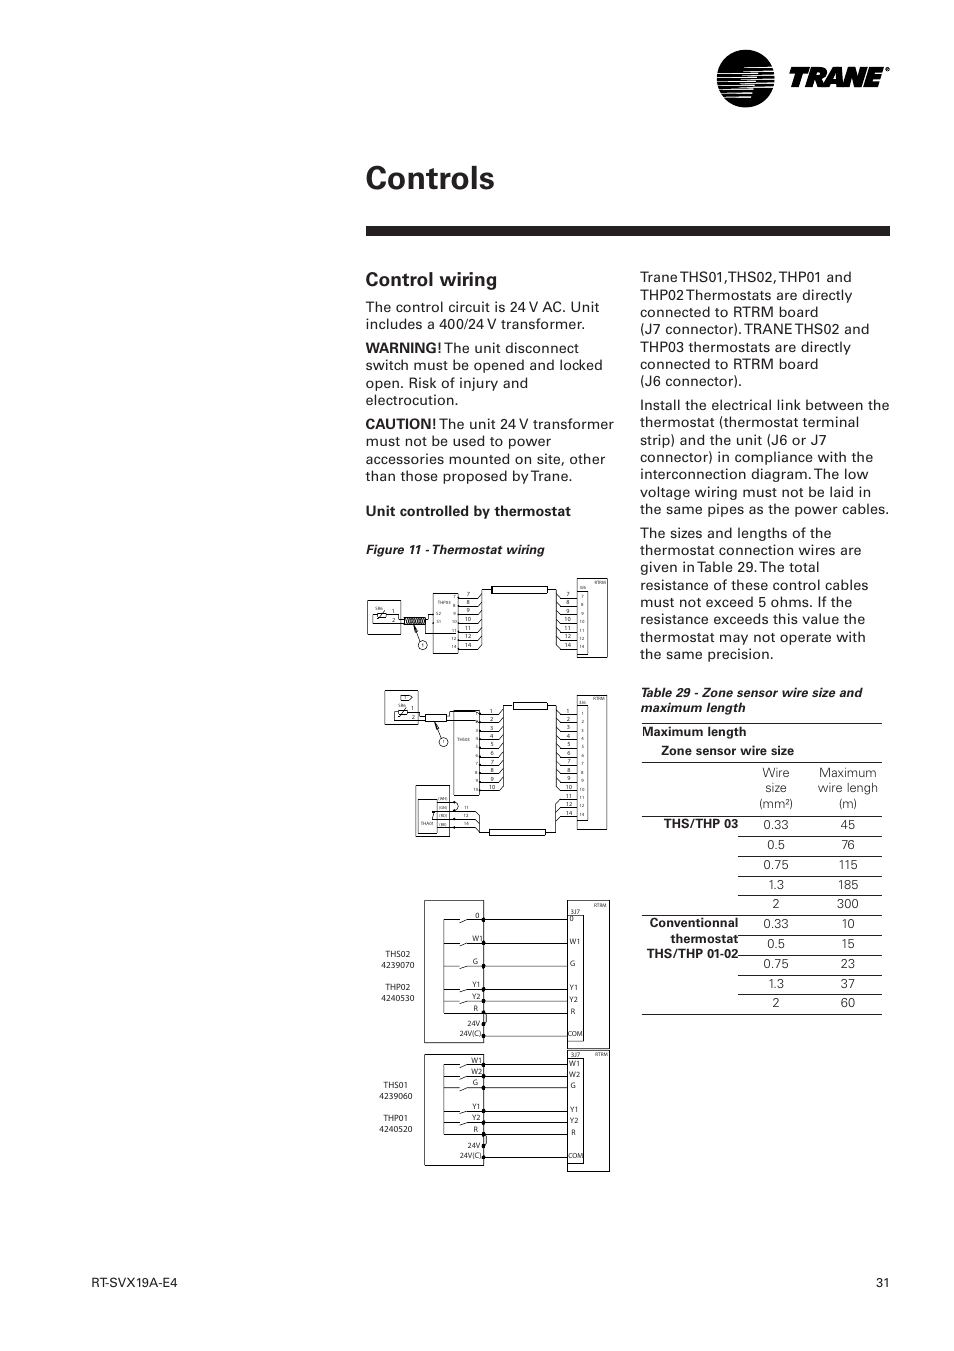 trane rt svx19a e4 page31?resize\\\\\\\=665%2C942 carrier rooftop unit wiring diagrams stove wiring diagram new  at pacquiaovsvargaslive.co